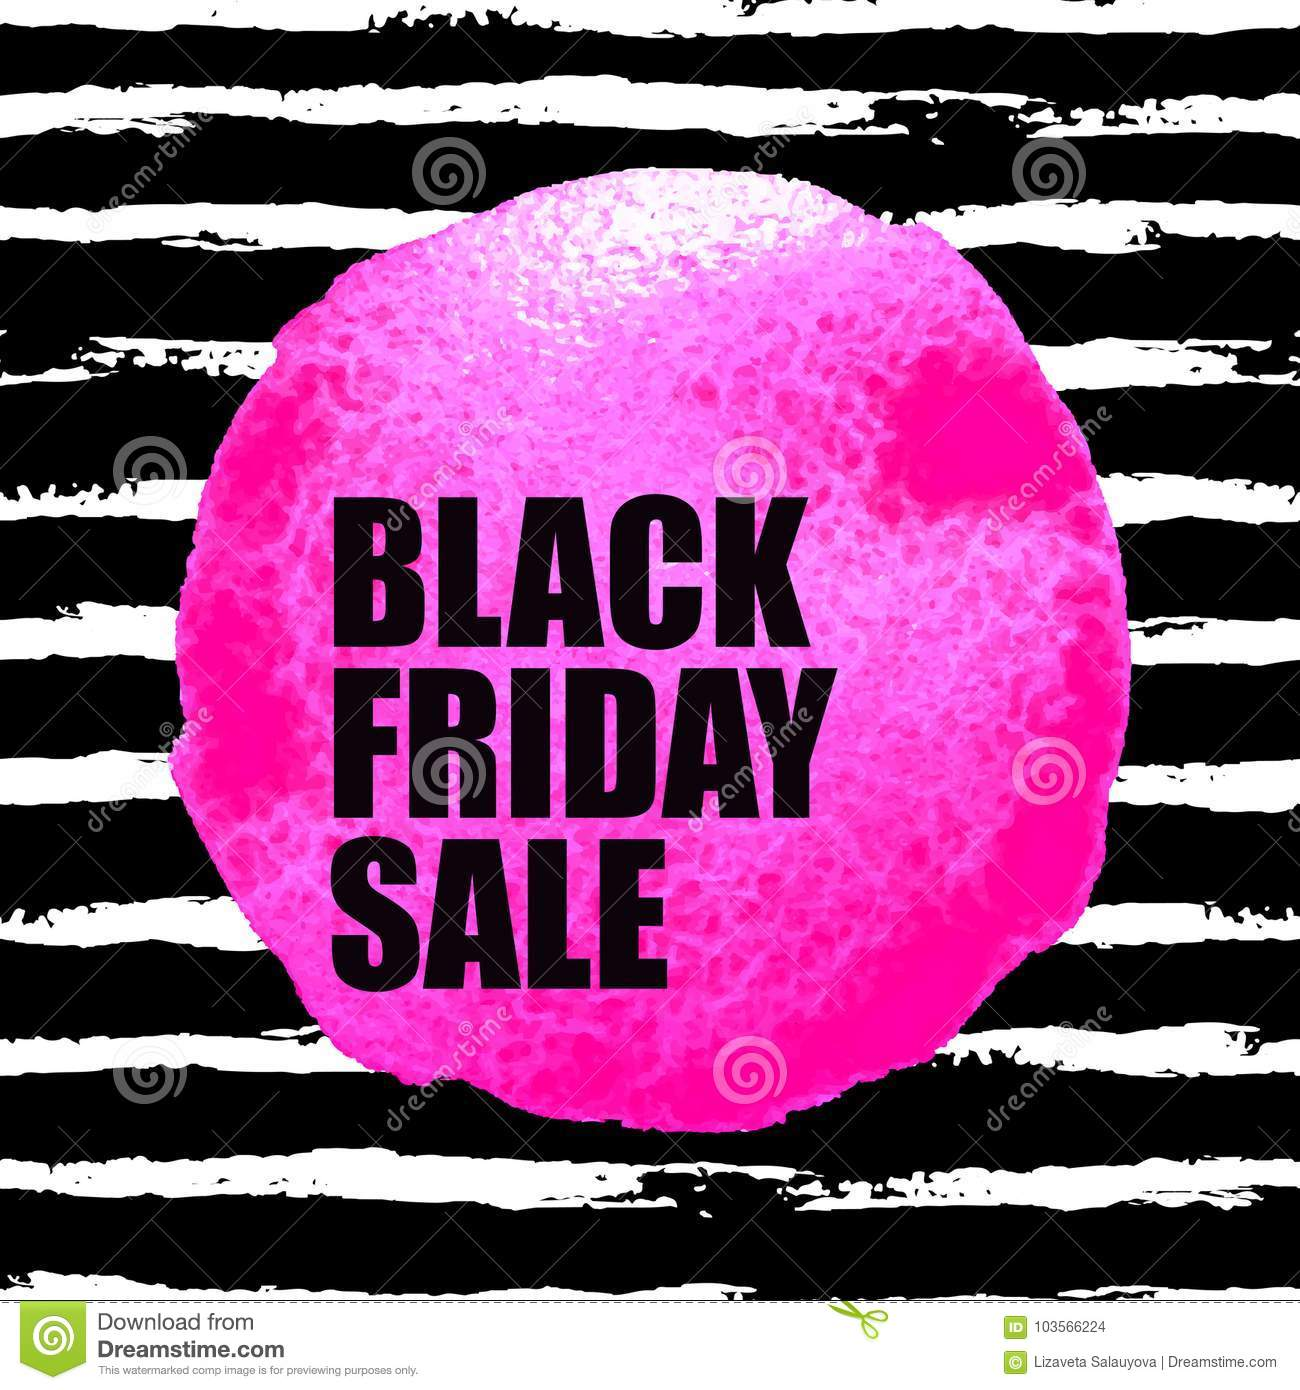 ffdb0c26a51 Vector illustration of Black Friday Sale banner with pink watercolor spot  on dark watercolor brush stroke background. Inscription design template.